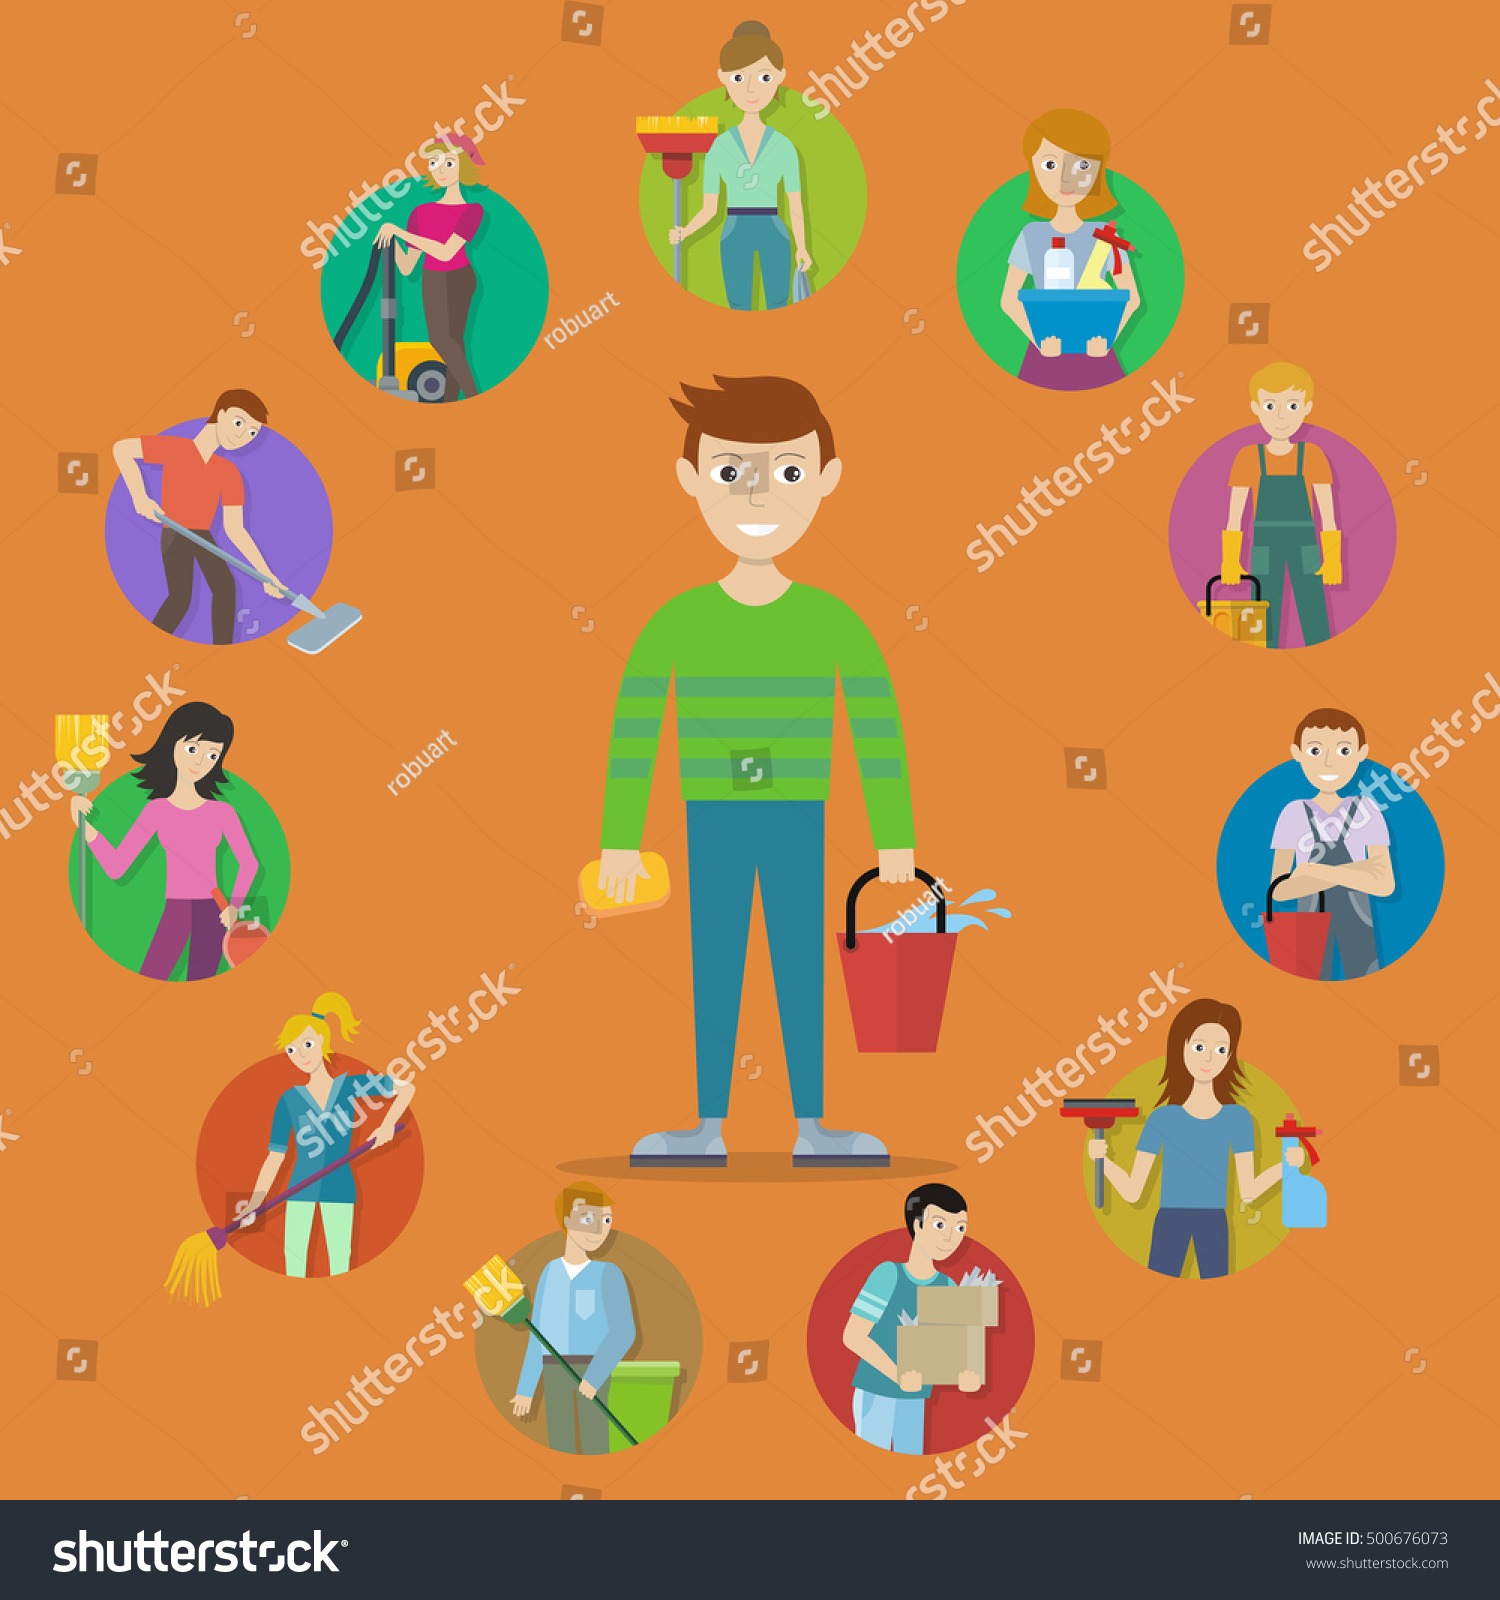 royalty cleaning service concept vector flat  collection of people characters tools for cleaning in house illustration for housekeeping companies and services advertising stock vector